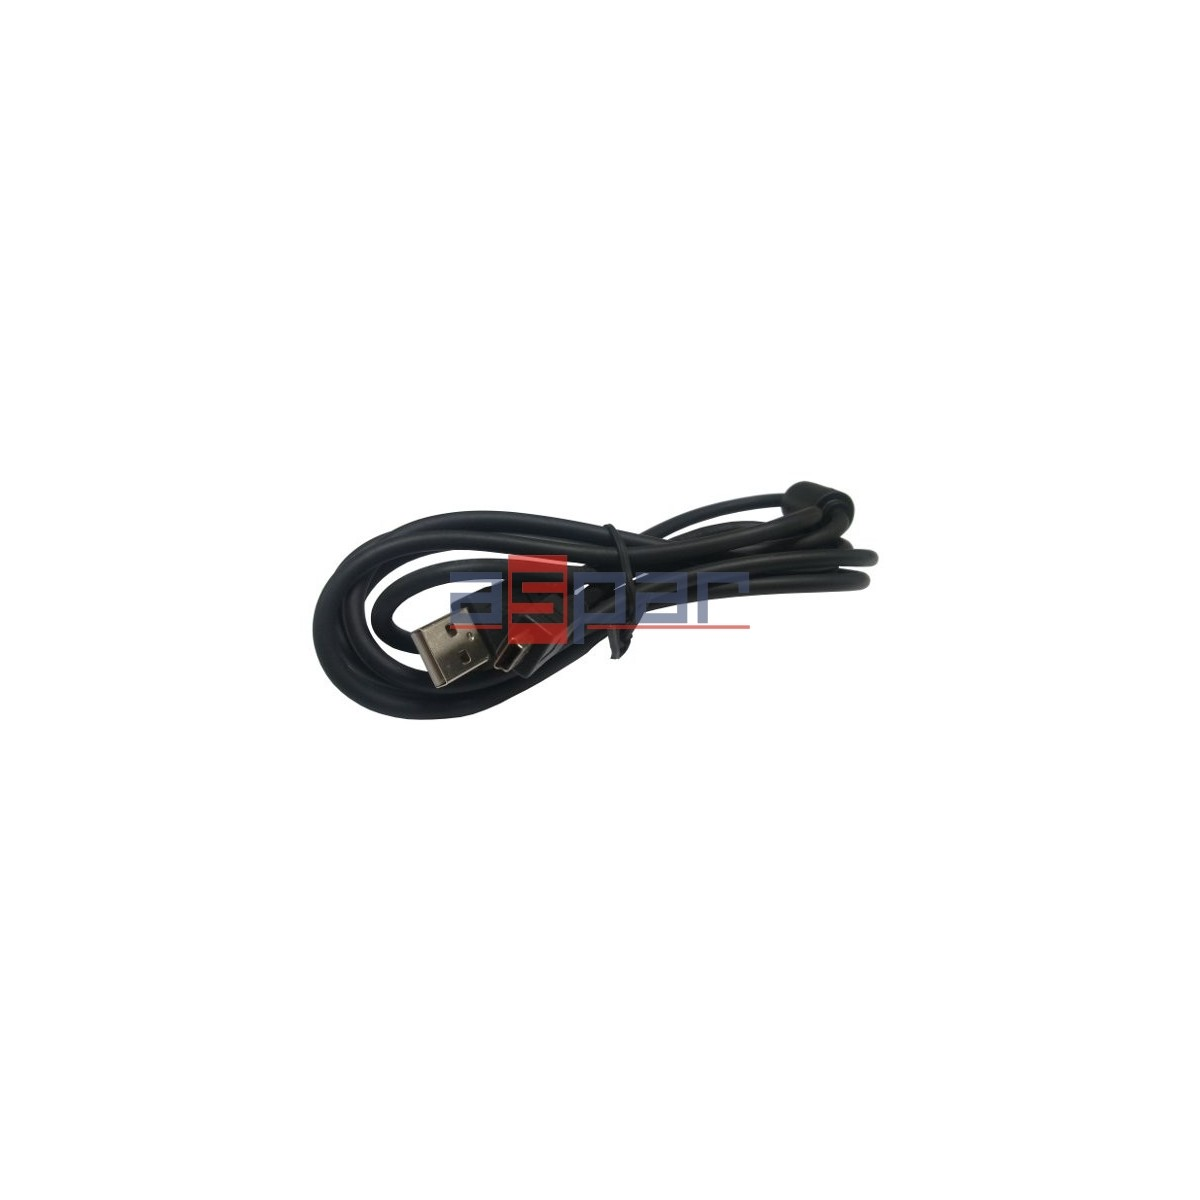 Programming cable, mini USB